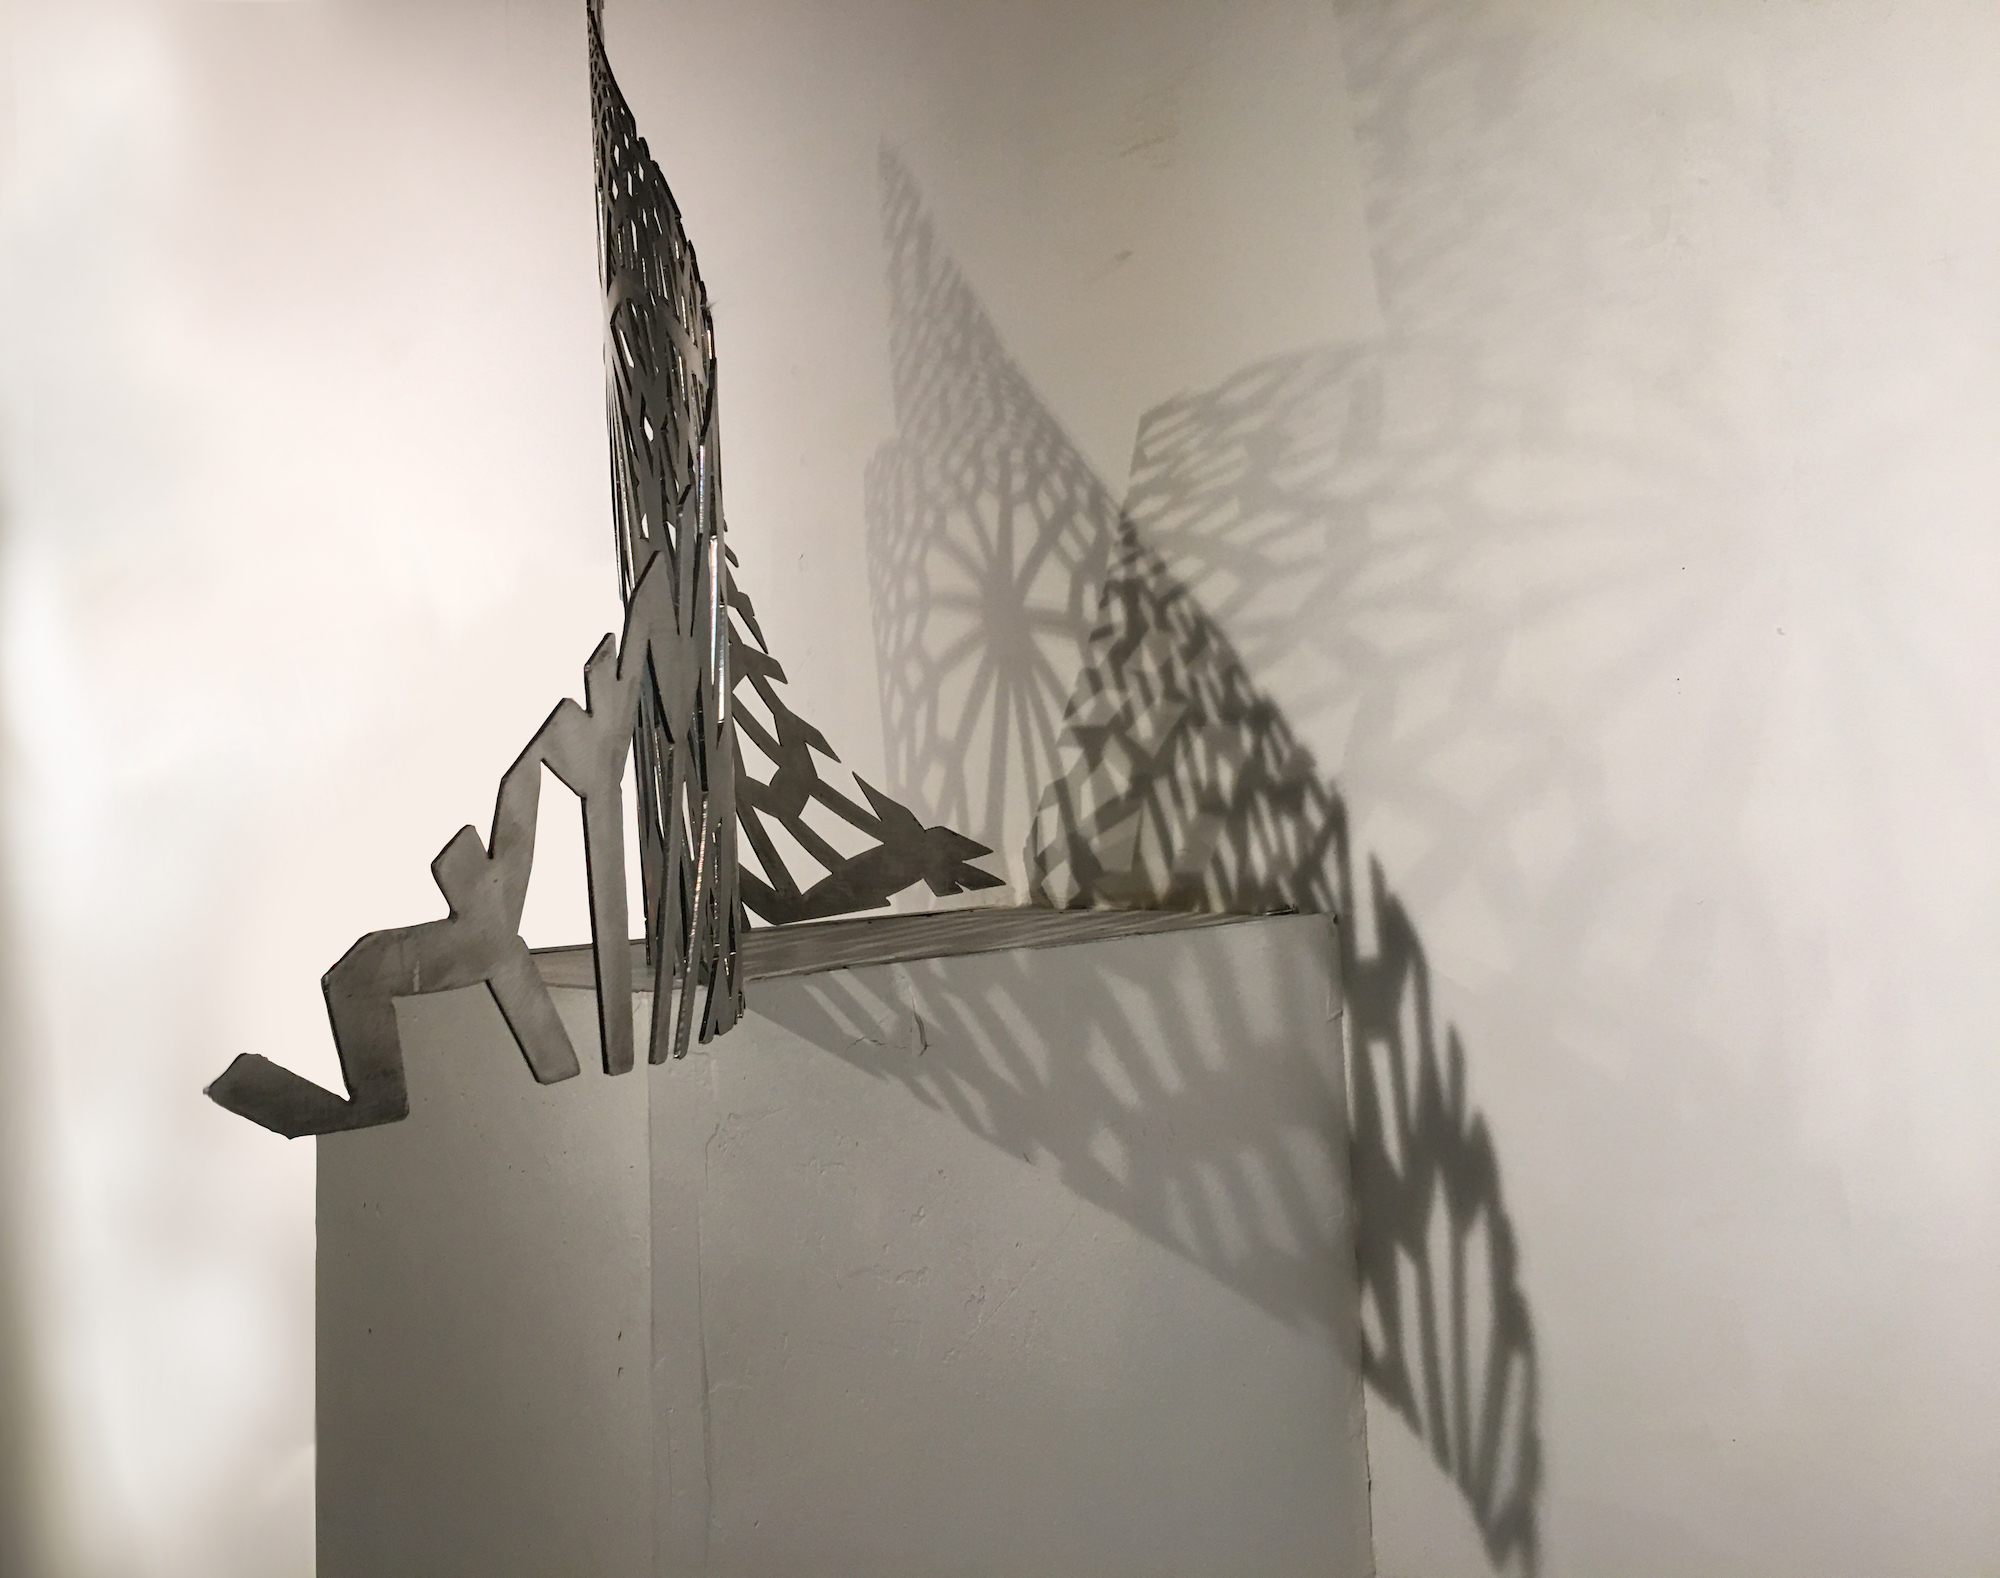 Patterns of Persia, side view, 12 gauge stainless steel, 25x48x11 inches, 2020